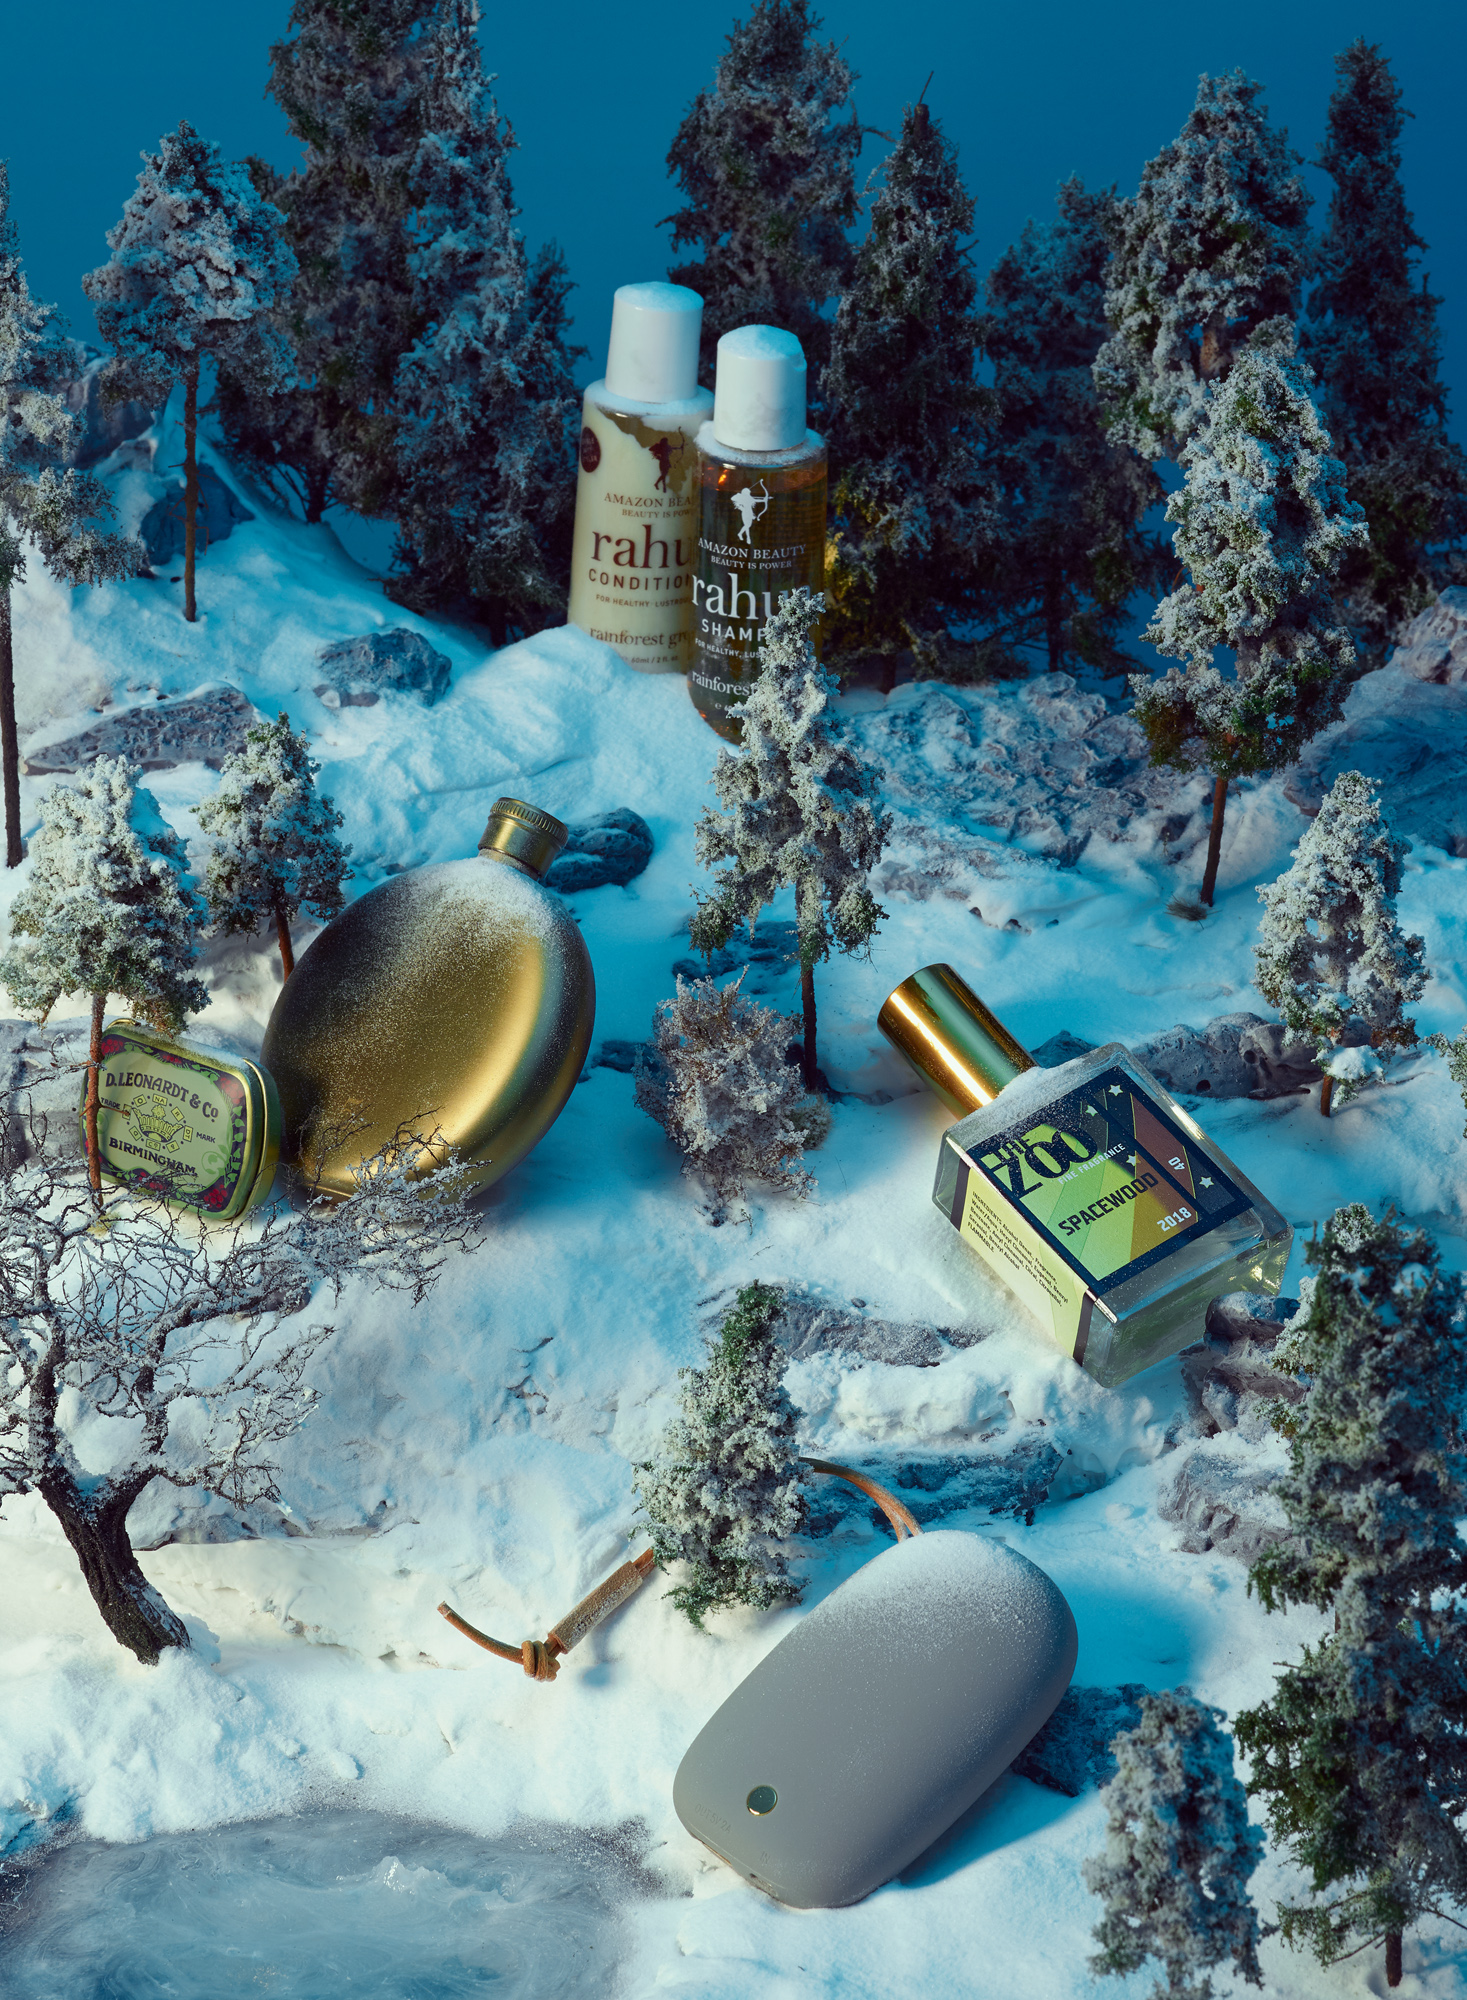 Still life on a winter diorama with Cosmetics, perfume, bottle and phone charger. Usta Magazine Travel Issue